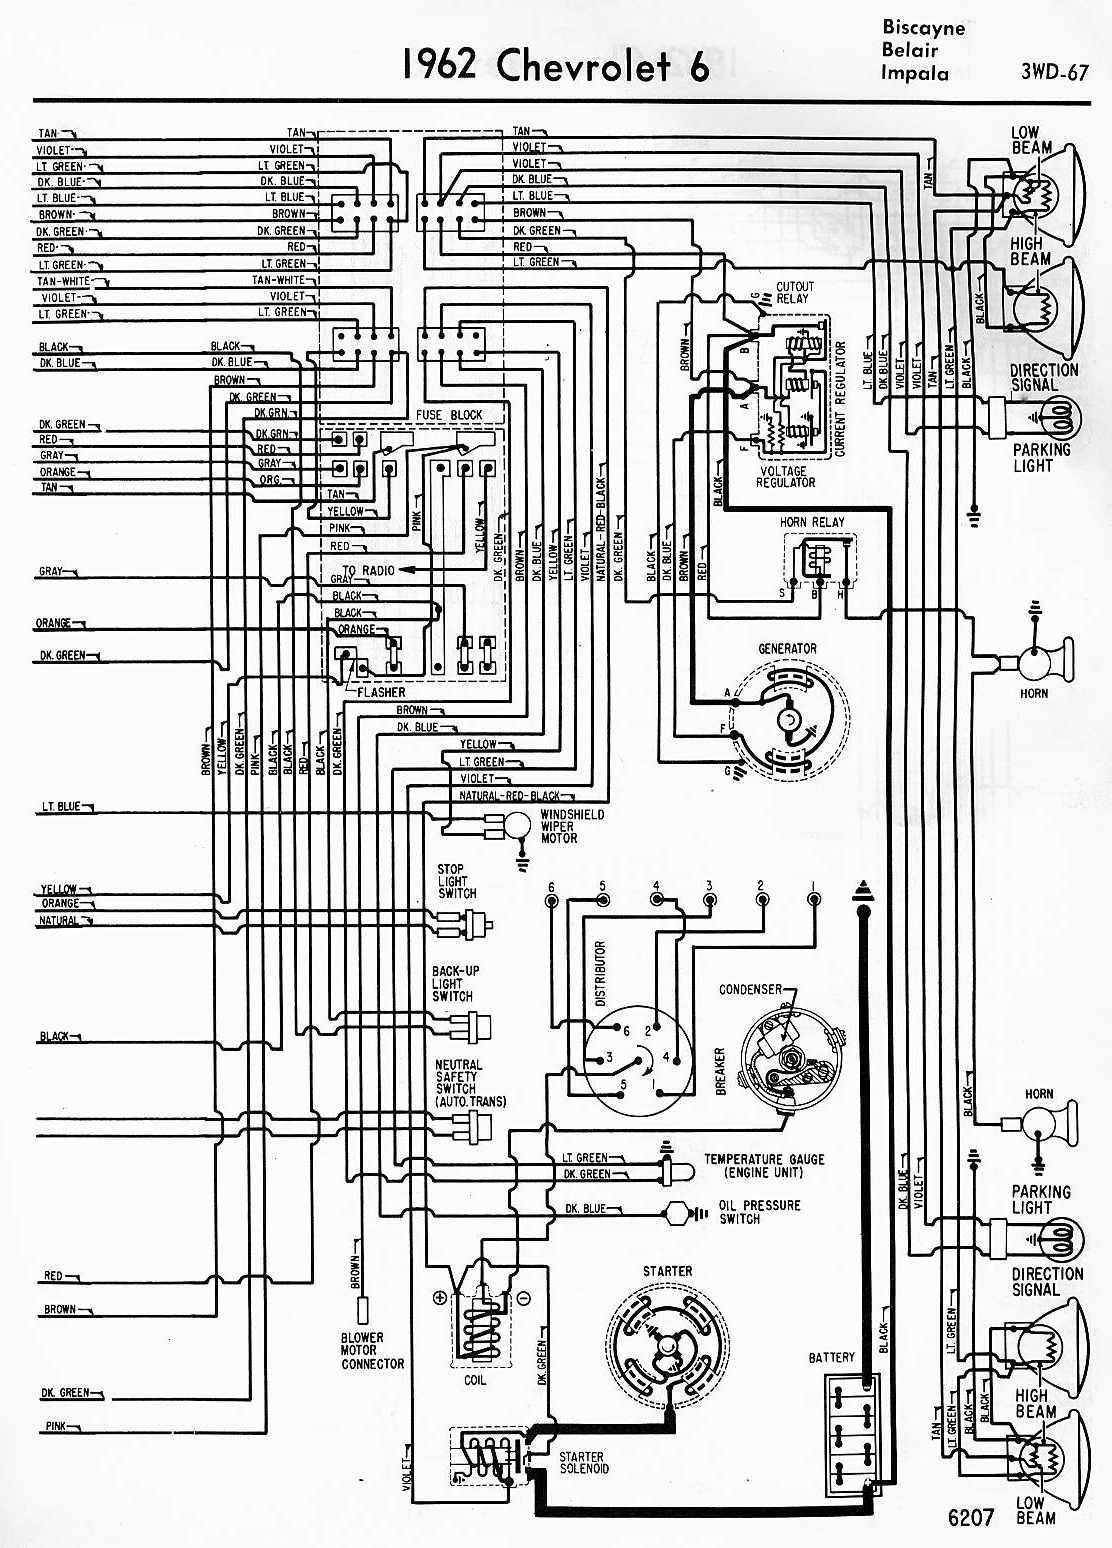 French Grimes Magneto Wiring Schematic - Wiring Diagram Bookmark on